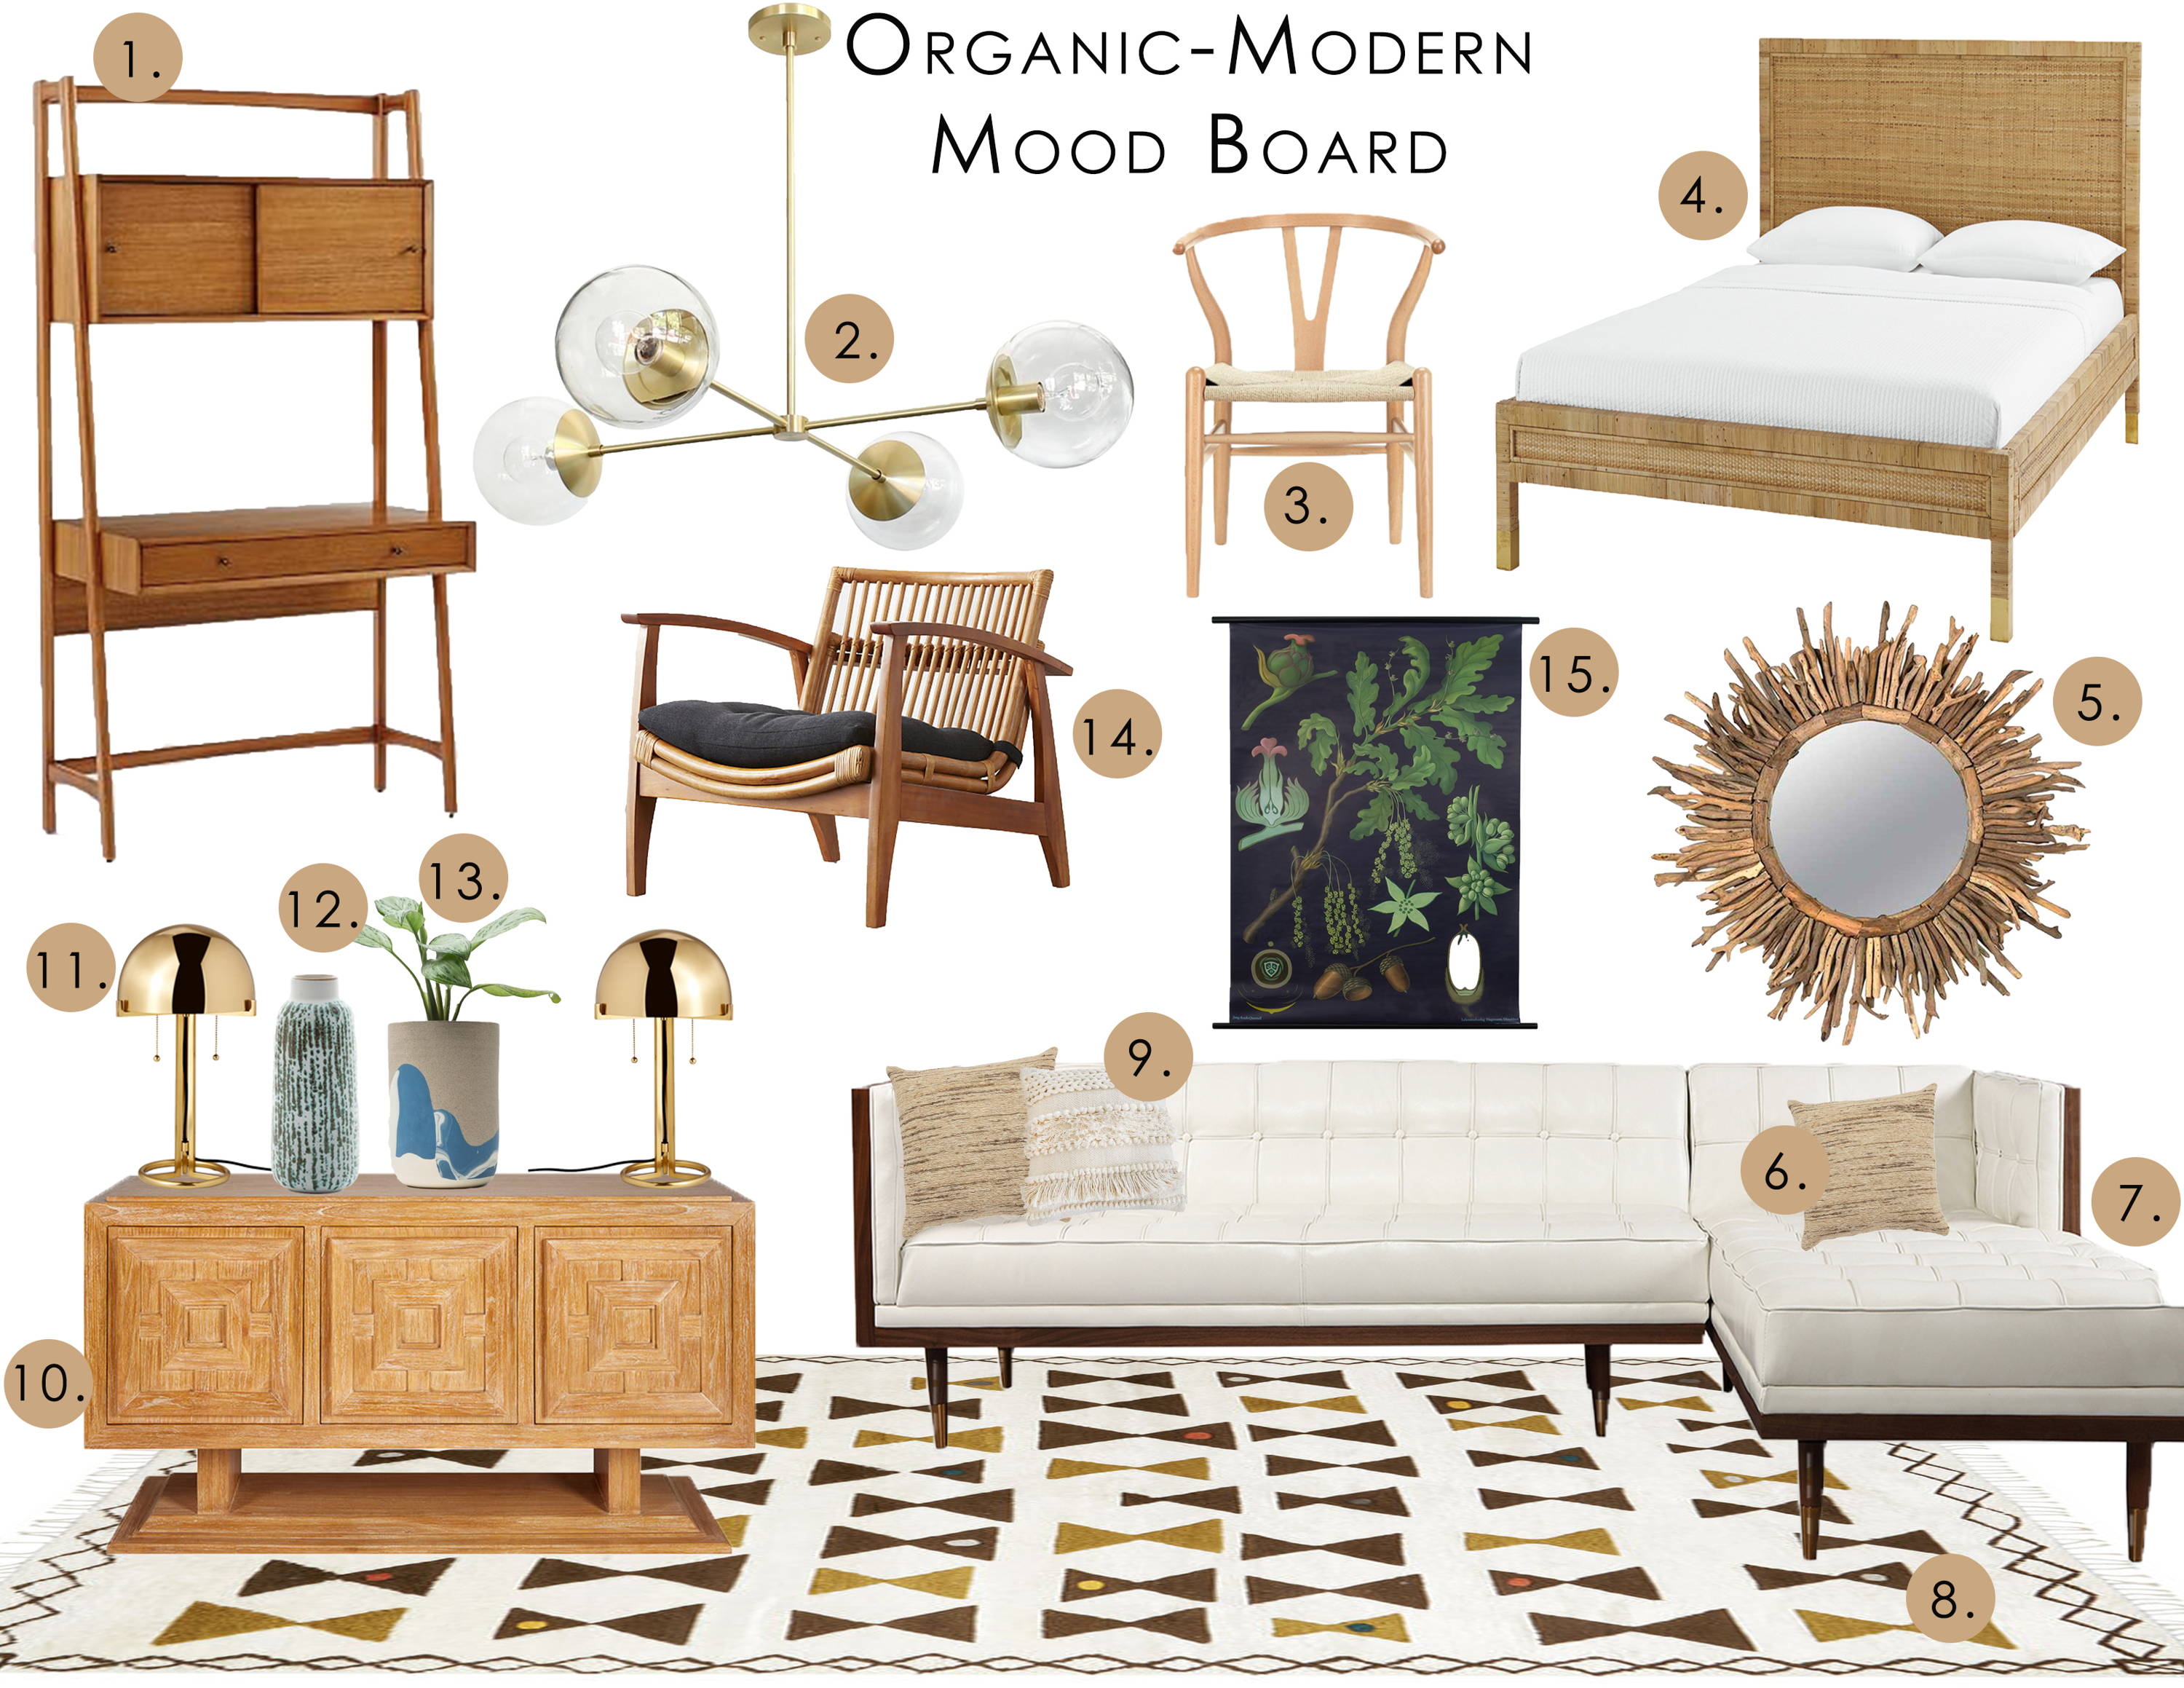 a design mood board in the organic modern style featuring furniture and home decor